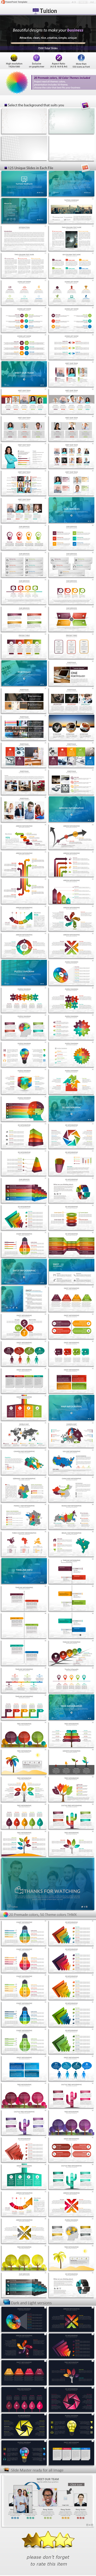 Tuition Multipurpose Powerpoint Template - Business PowerPoint Templates